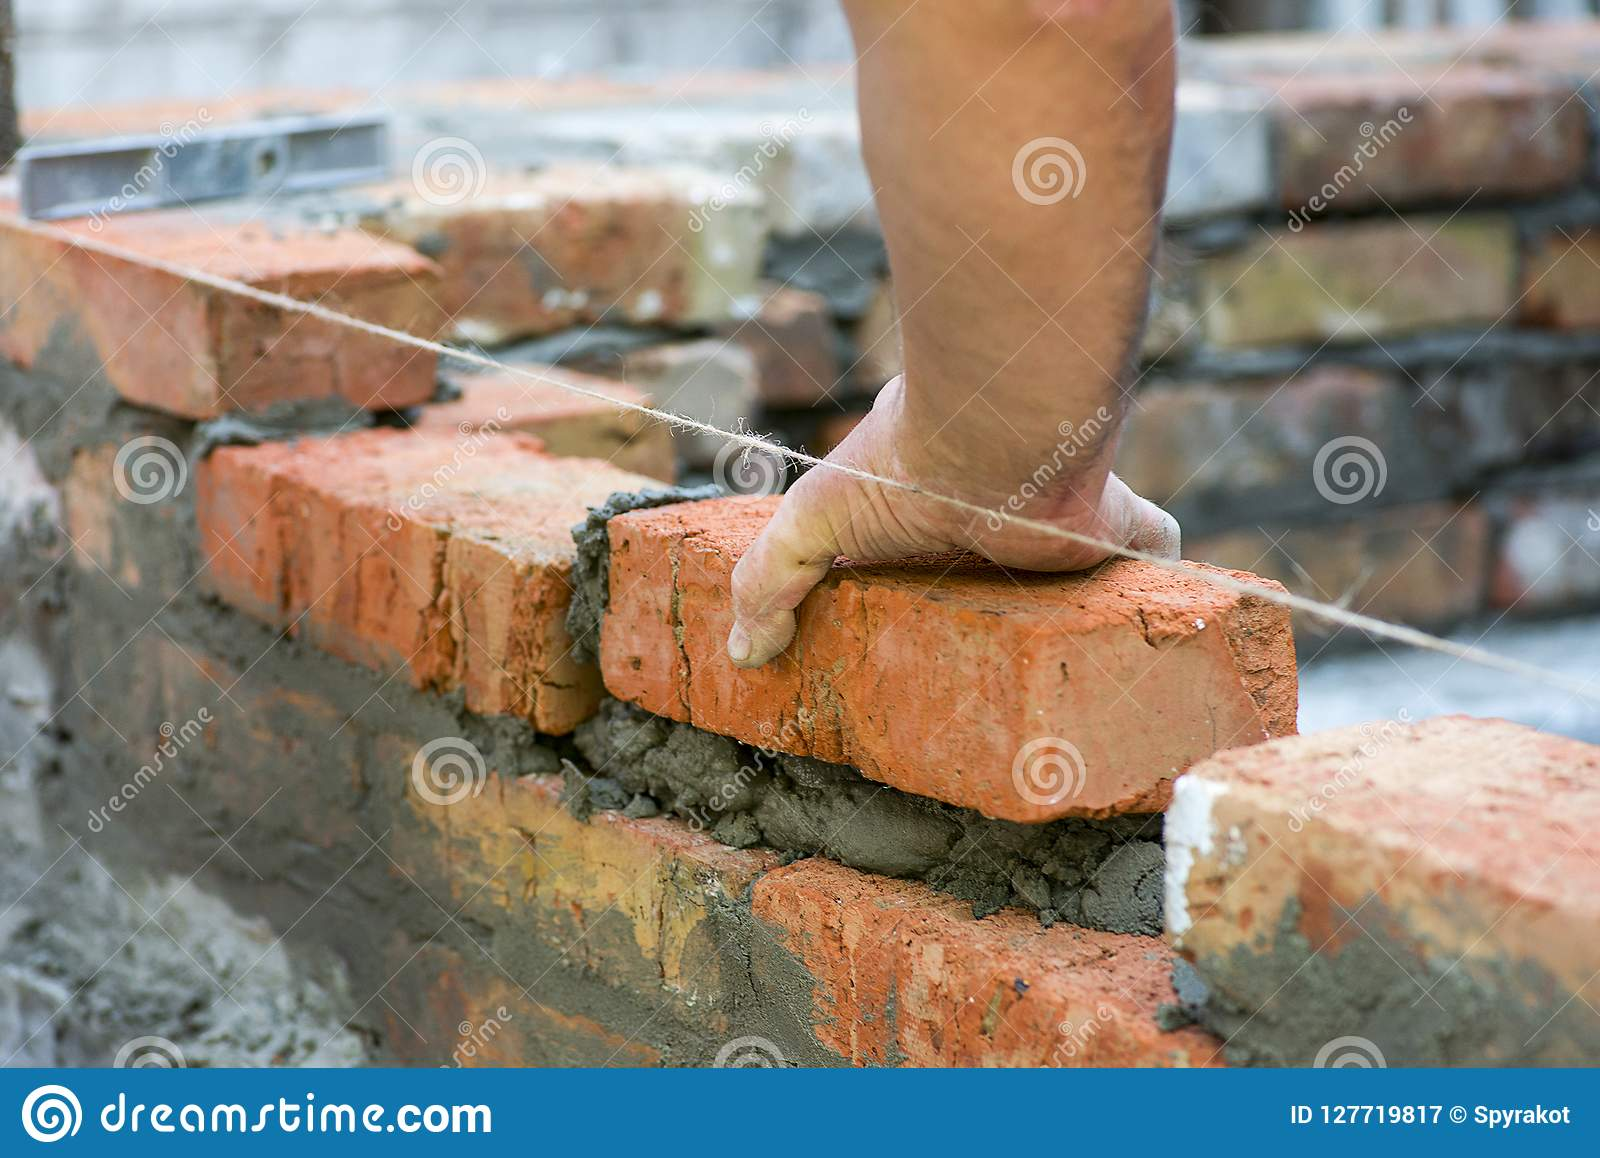 Building brick block wall on construction plant. Worker builds a brick wall in the house. Construction worker laying bricks on ext